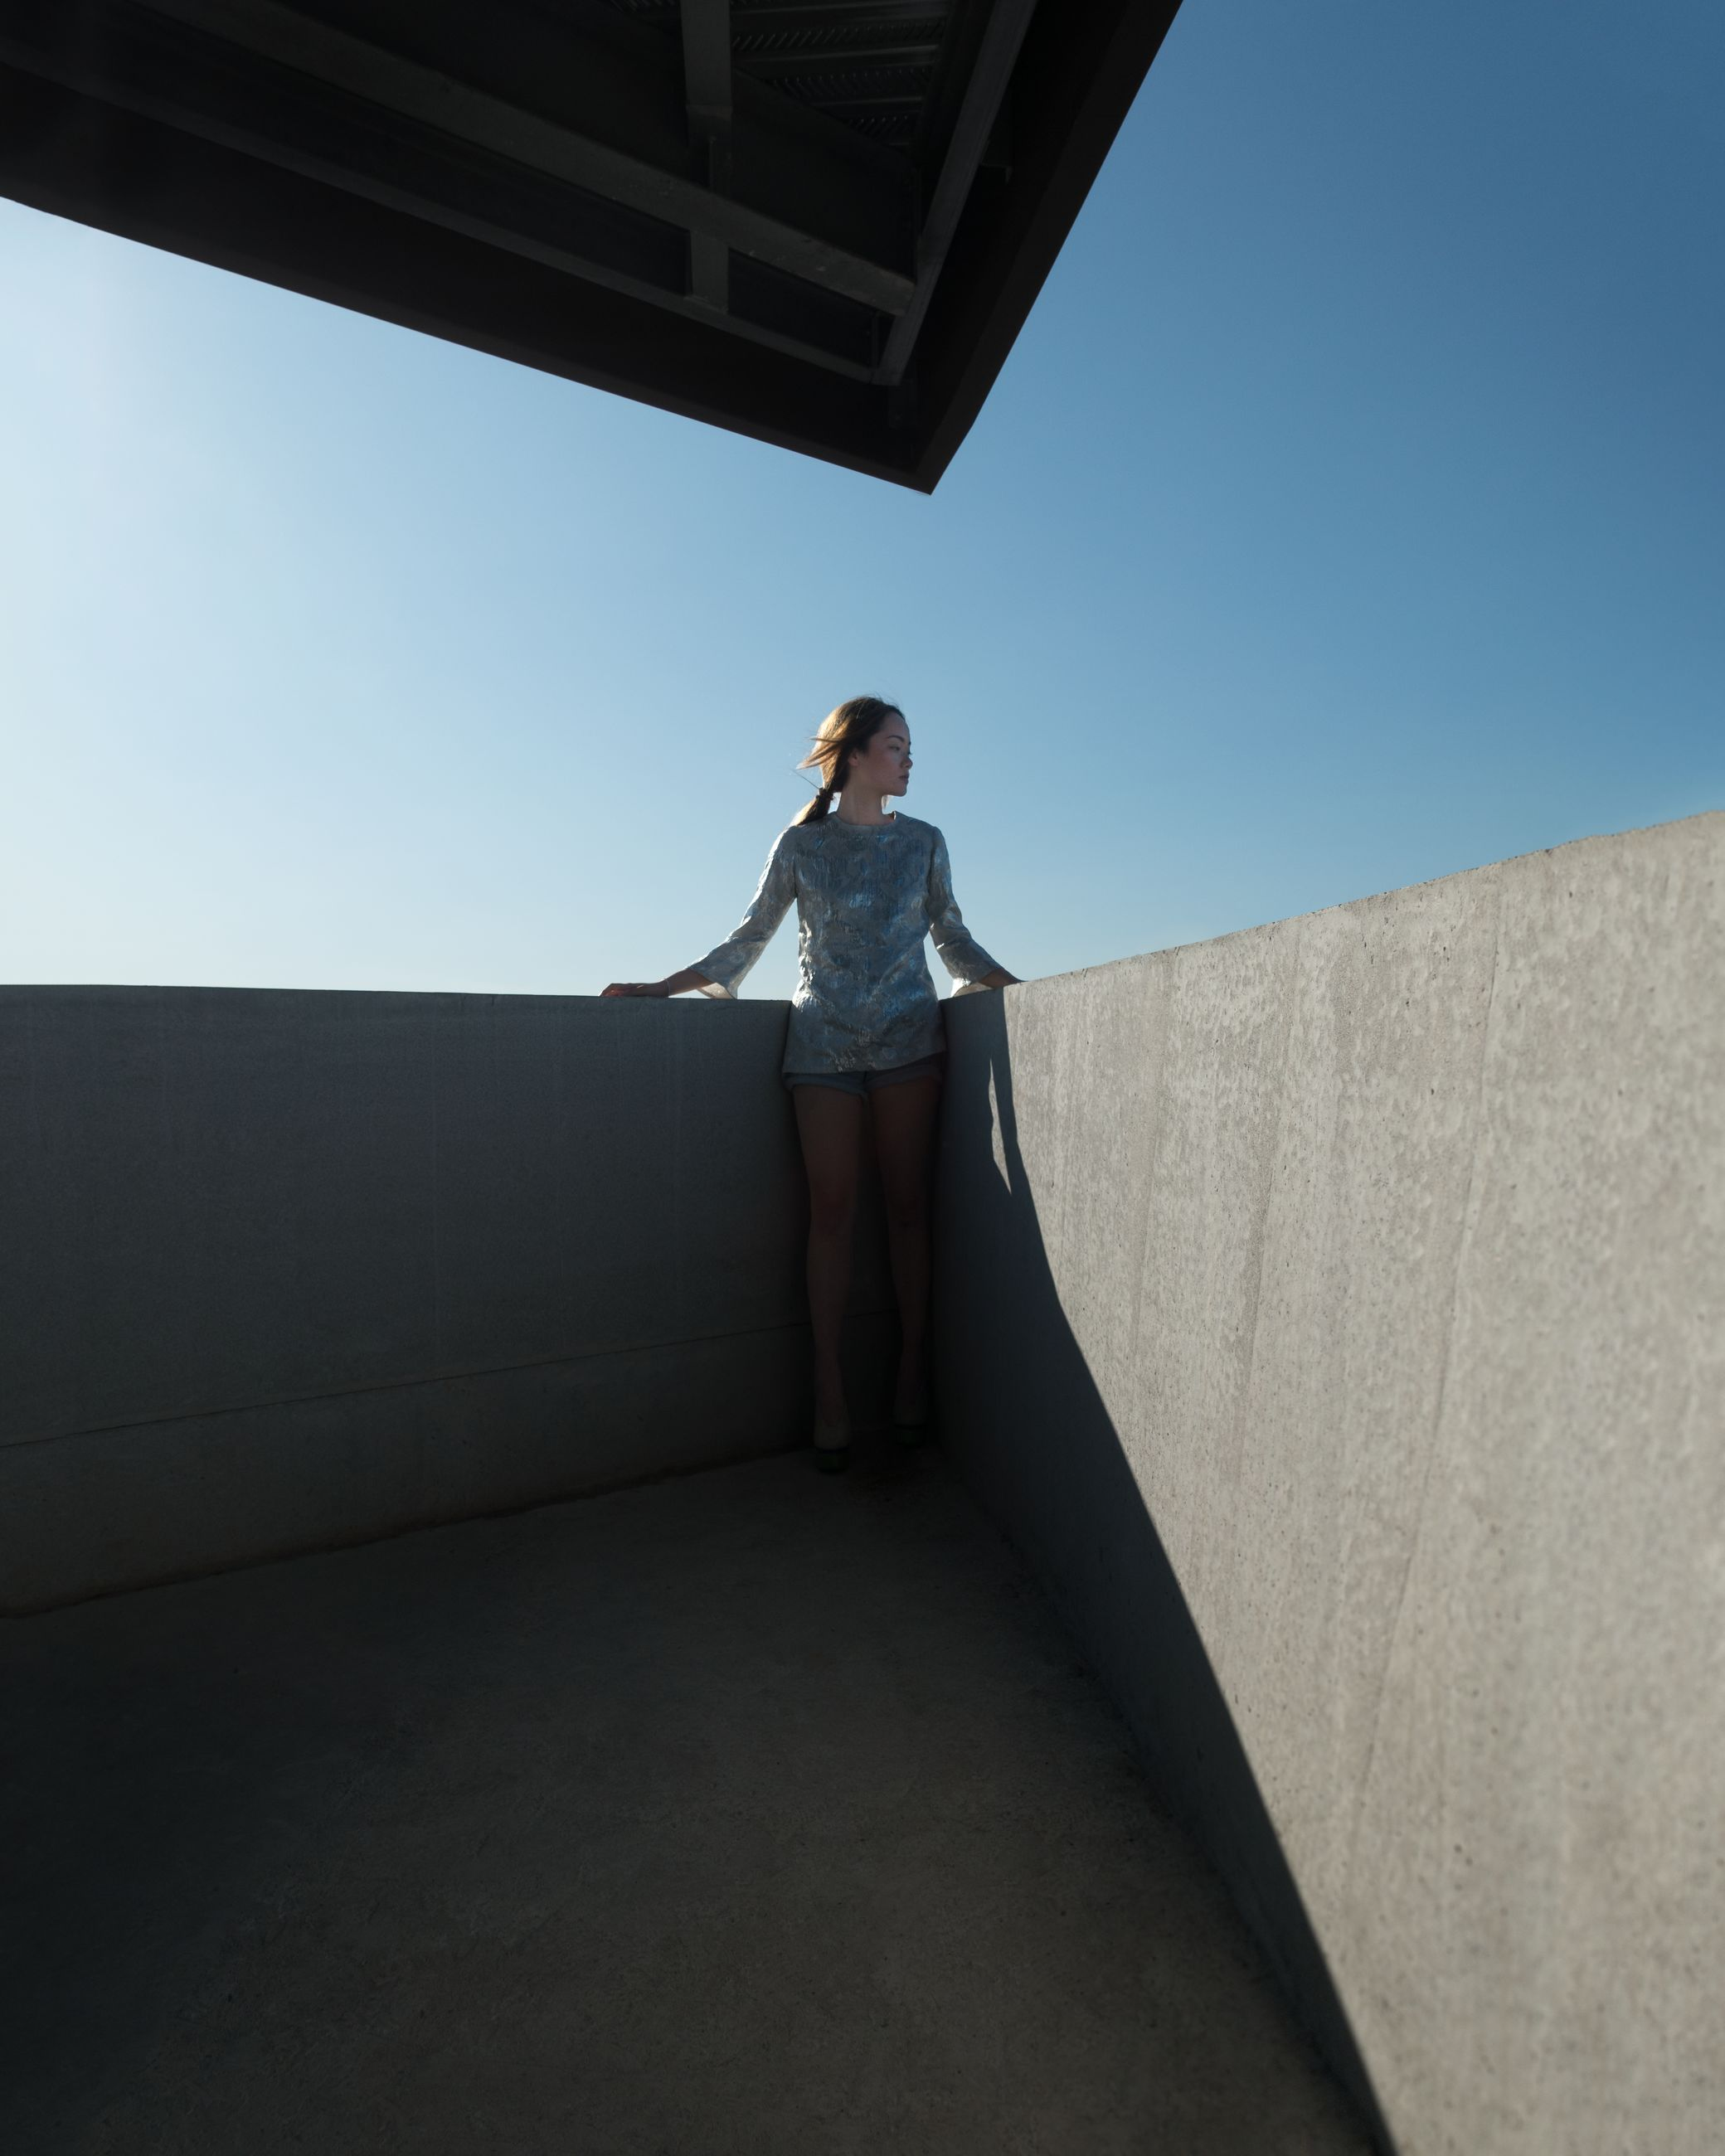 standing, real people, one person, lifestyles, sky, leisure activity, architecture, front view, wall - building feature, full length, young women, young adult, built structure, clear sky, low angle view, casual clothing, nature, sunlight, day, contemplation, teenager